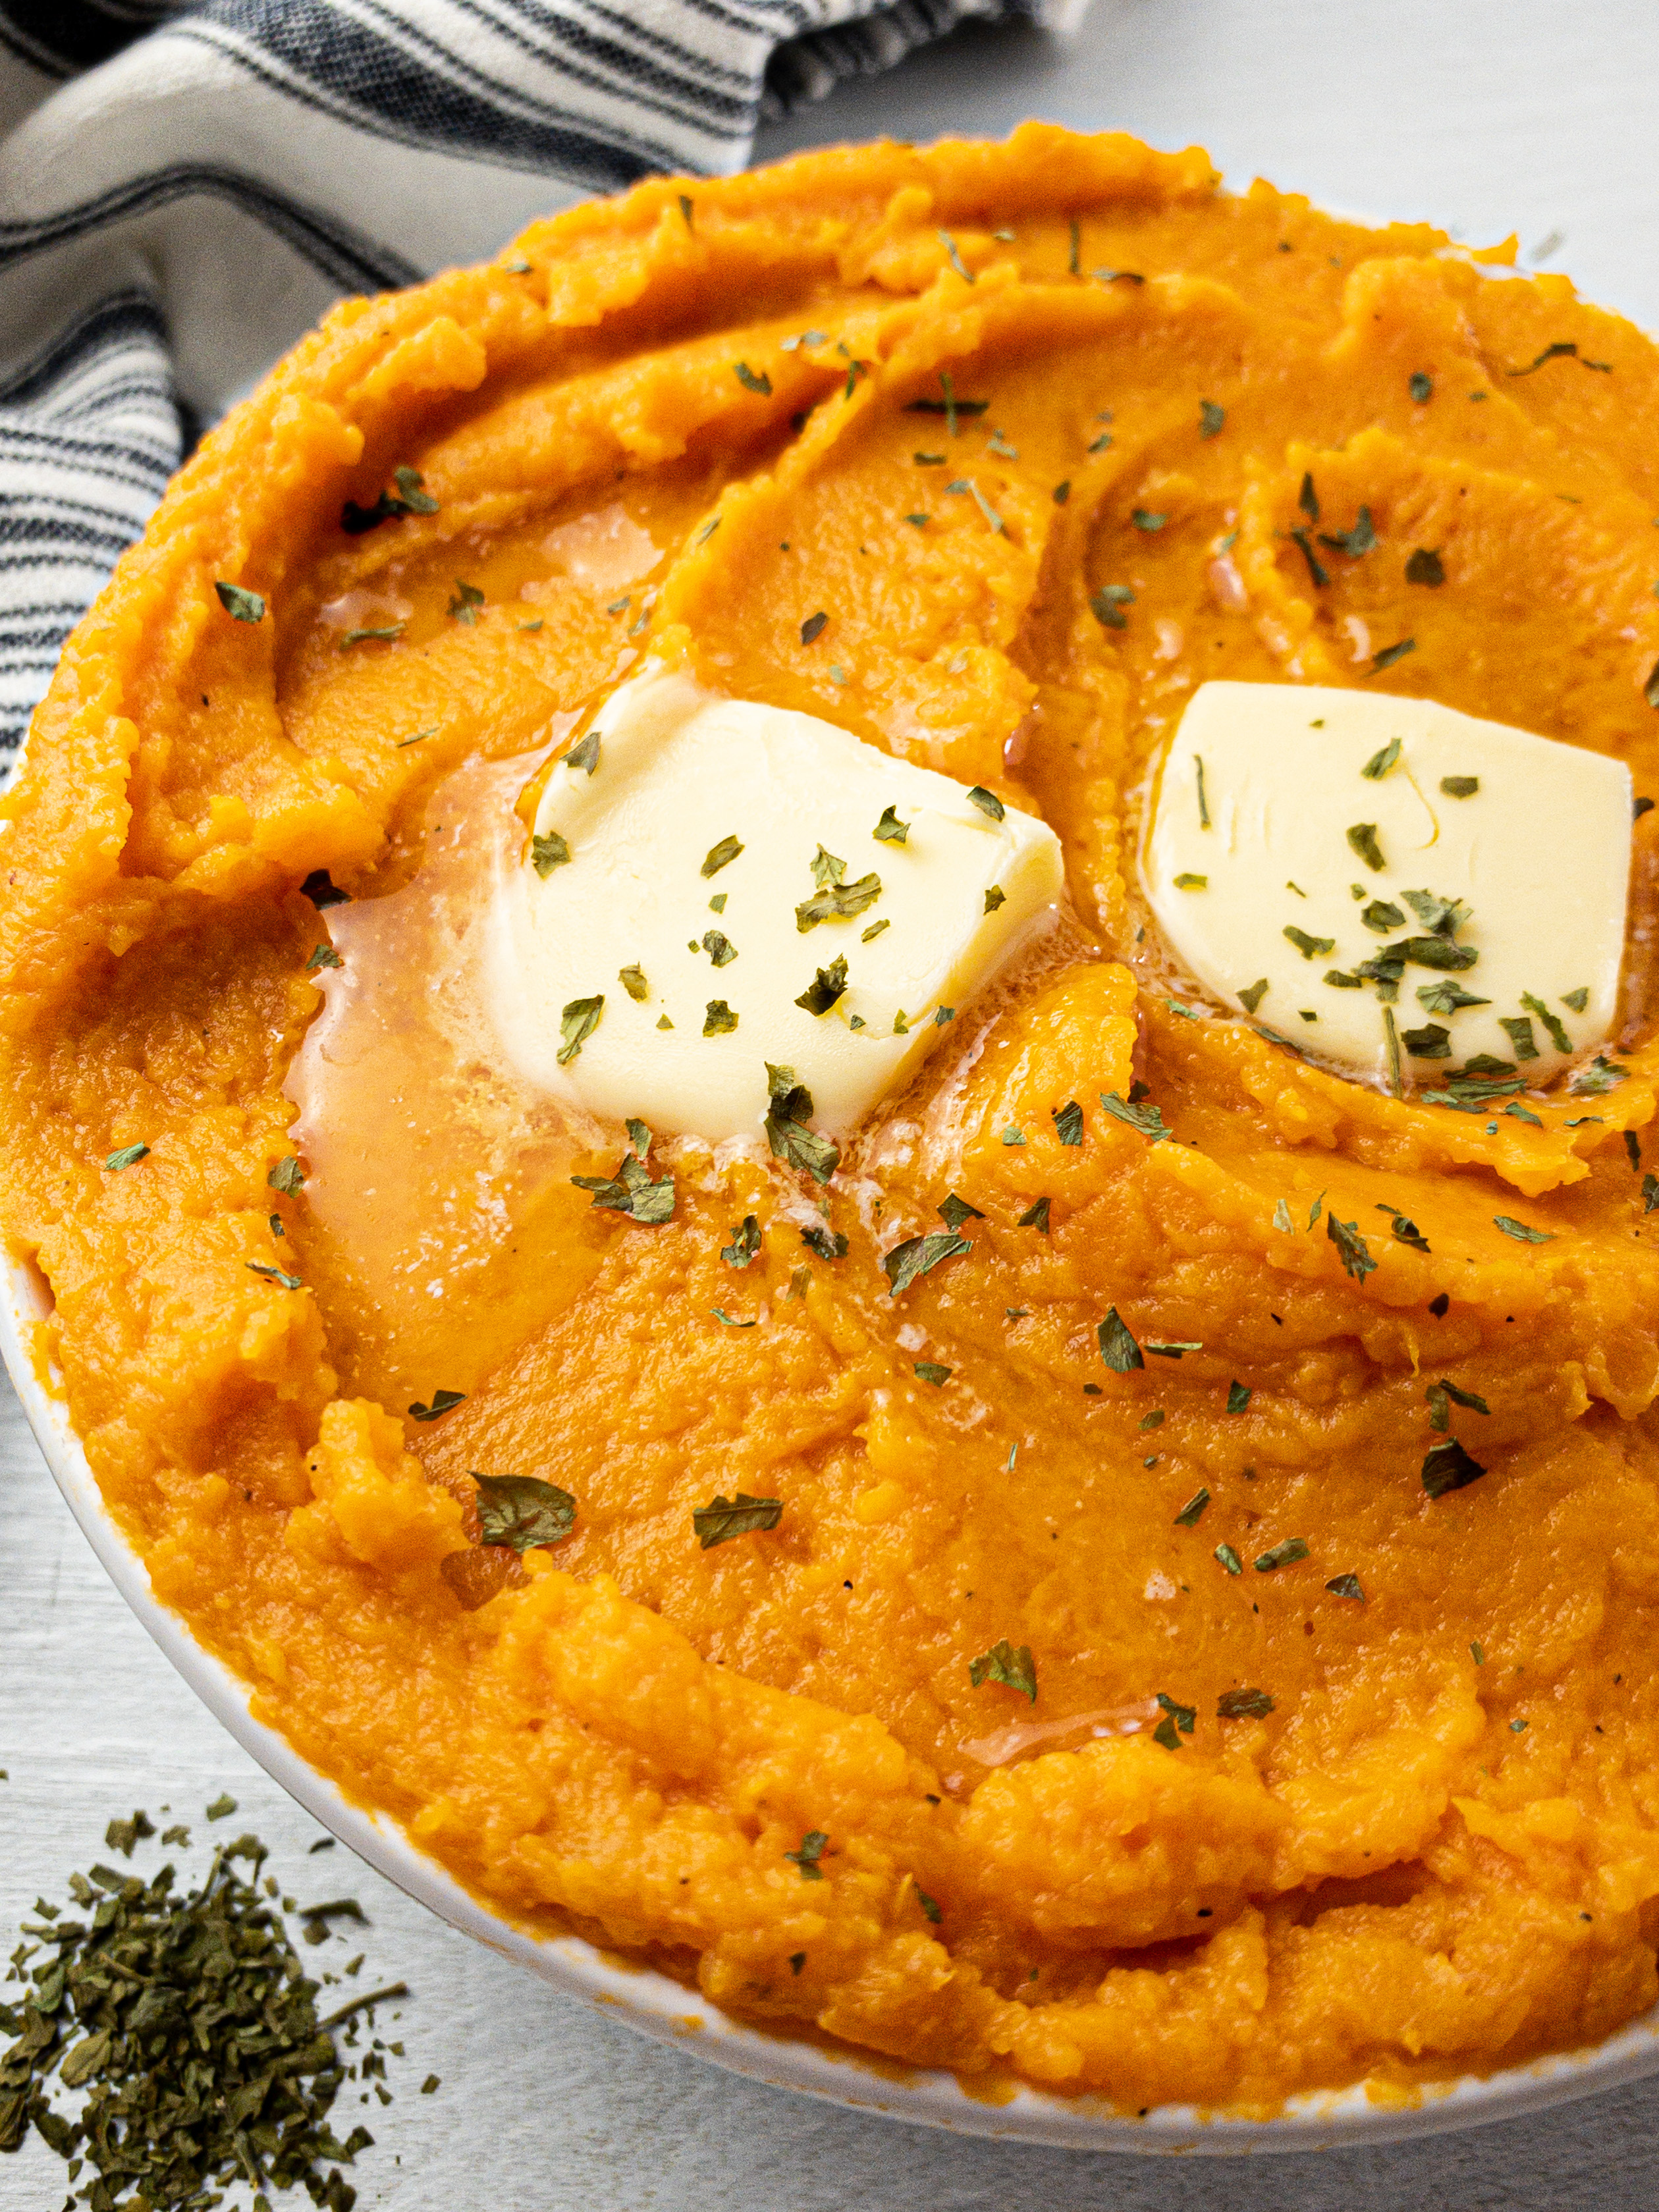 savory mashed sweet potatoes for a healthy side dish or holiday occasion